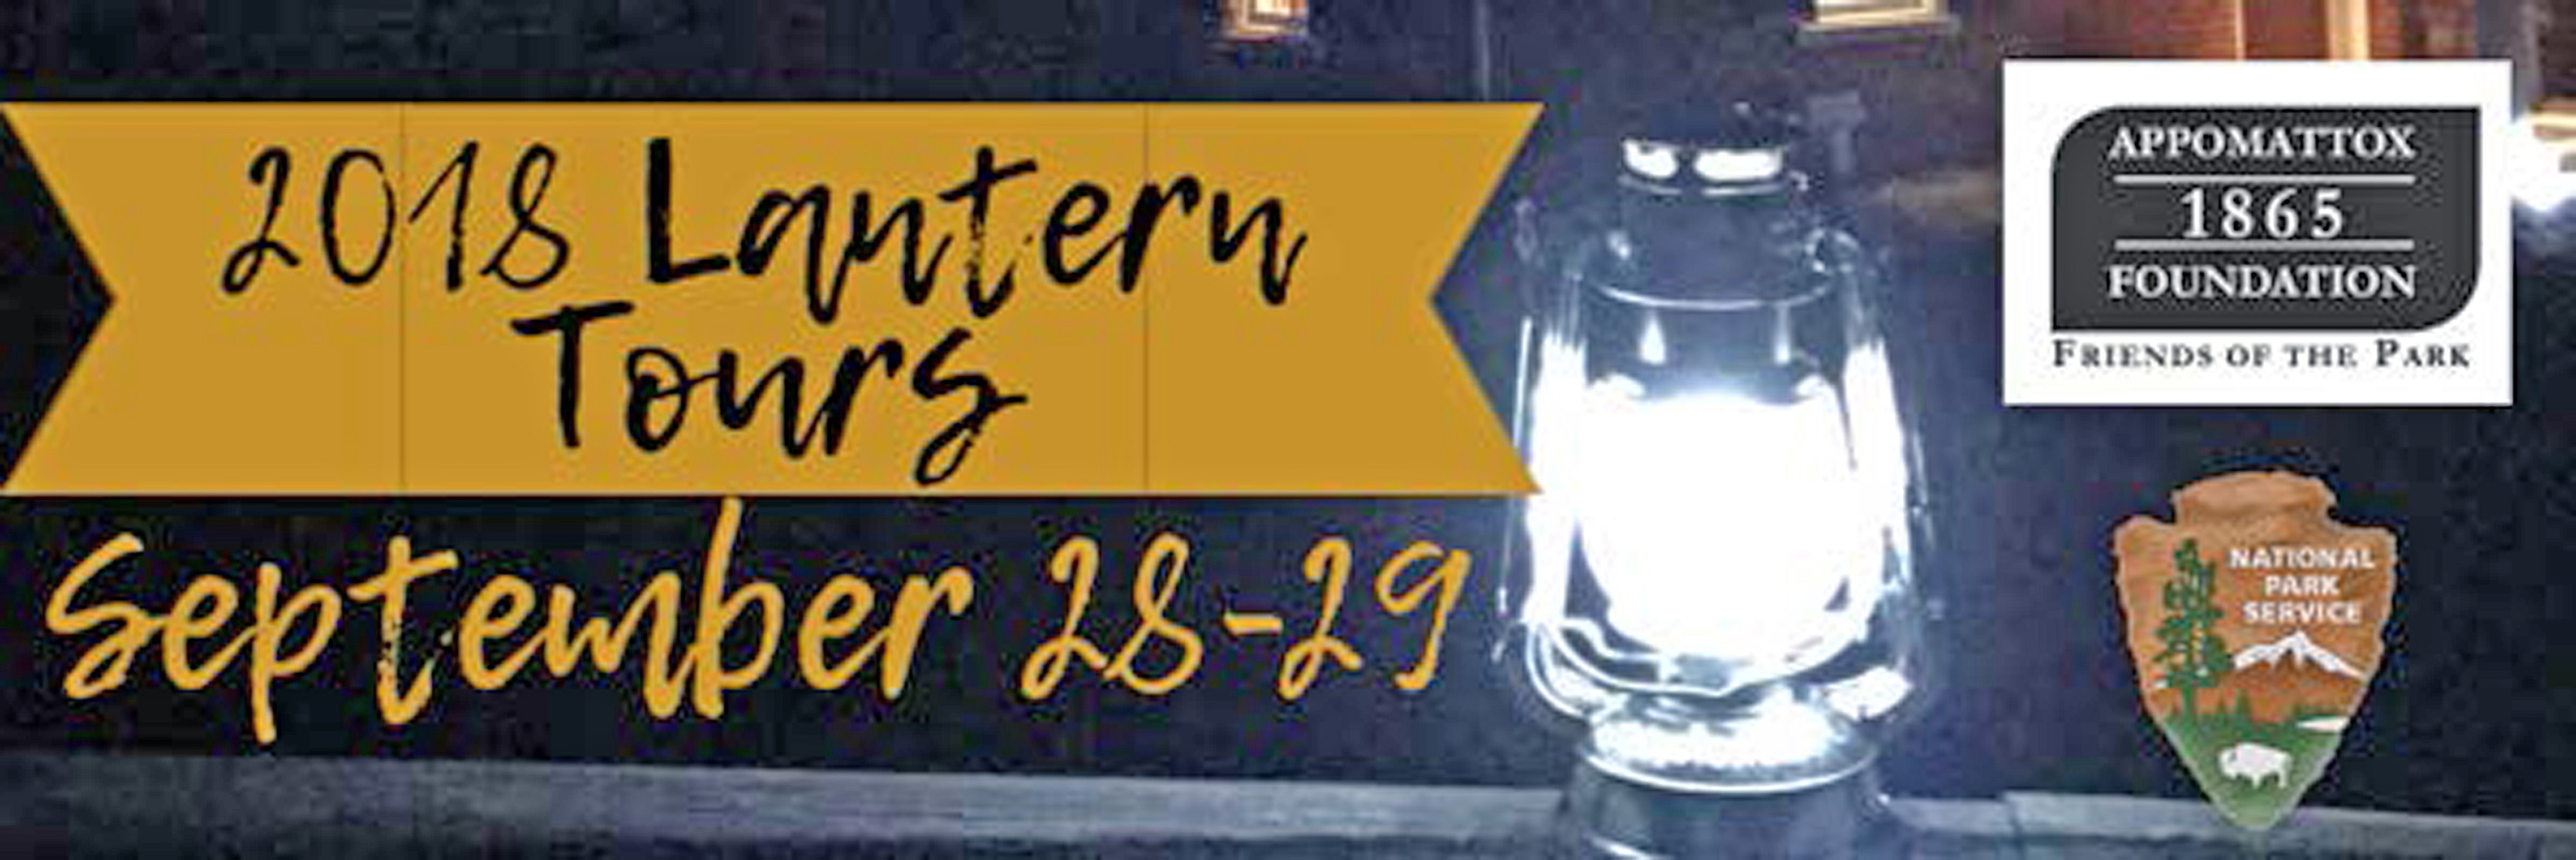 Picture of 2018 Lantern tour flyer with dates and a lantern